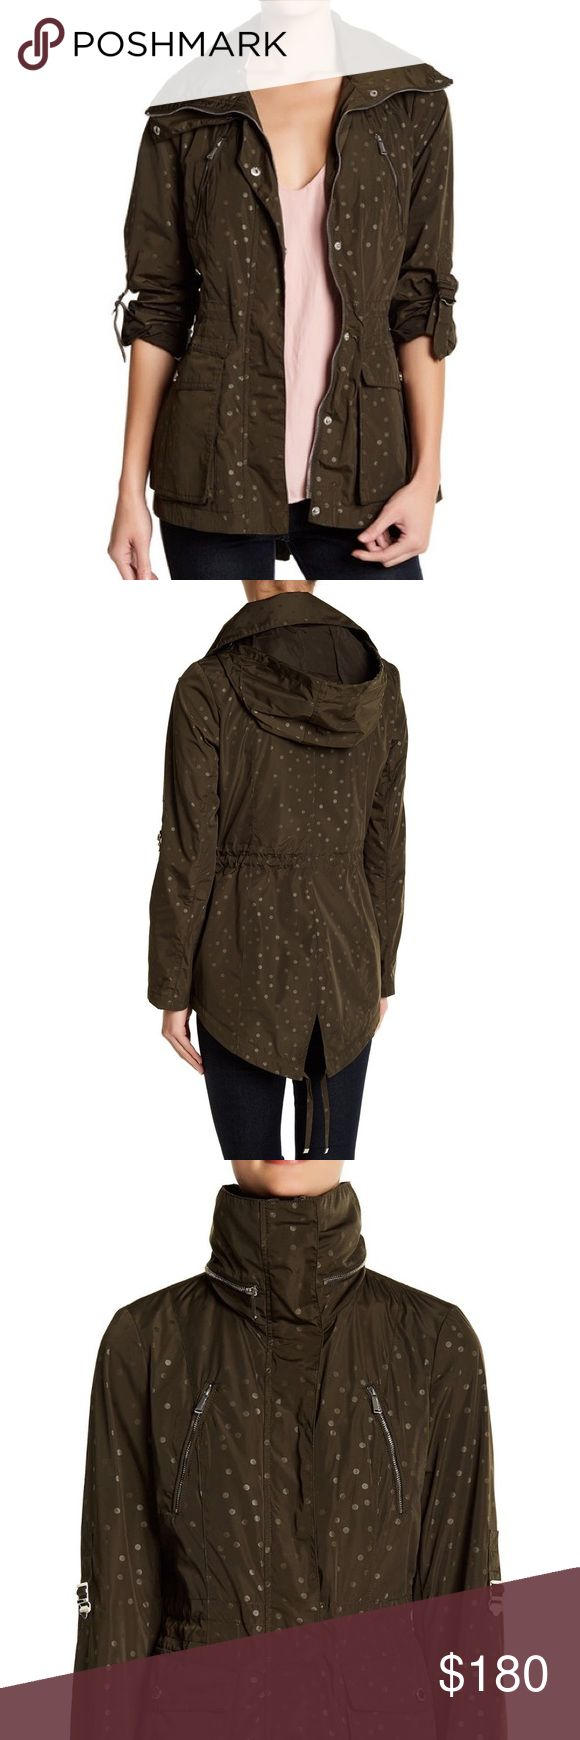 bcbgeneration // polka dot anorak NWT BCBGeneration military green hip-length jacket with all over polka-dot print, stowable hood, stand collar, interior and exterior drawstrings. Fully lined. Sold out everywhere! BCBGeneration Jackets & Coats